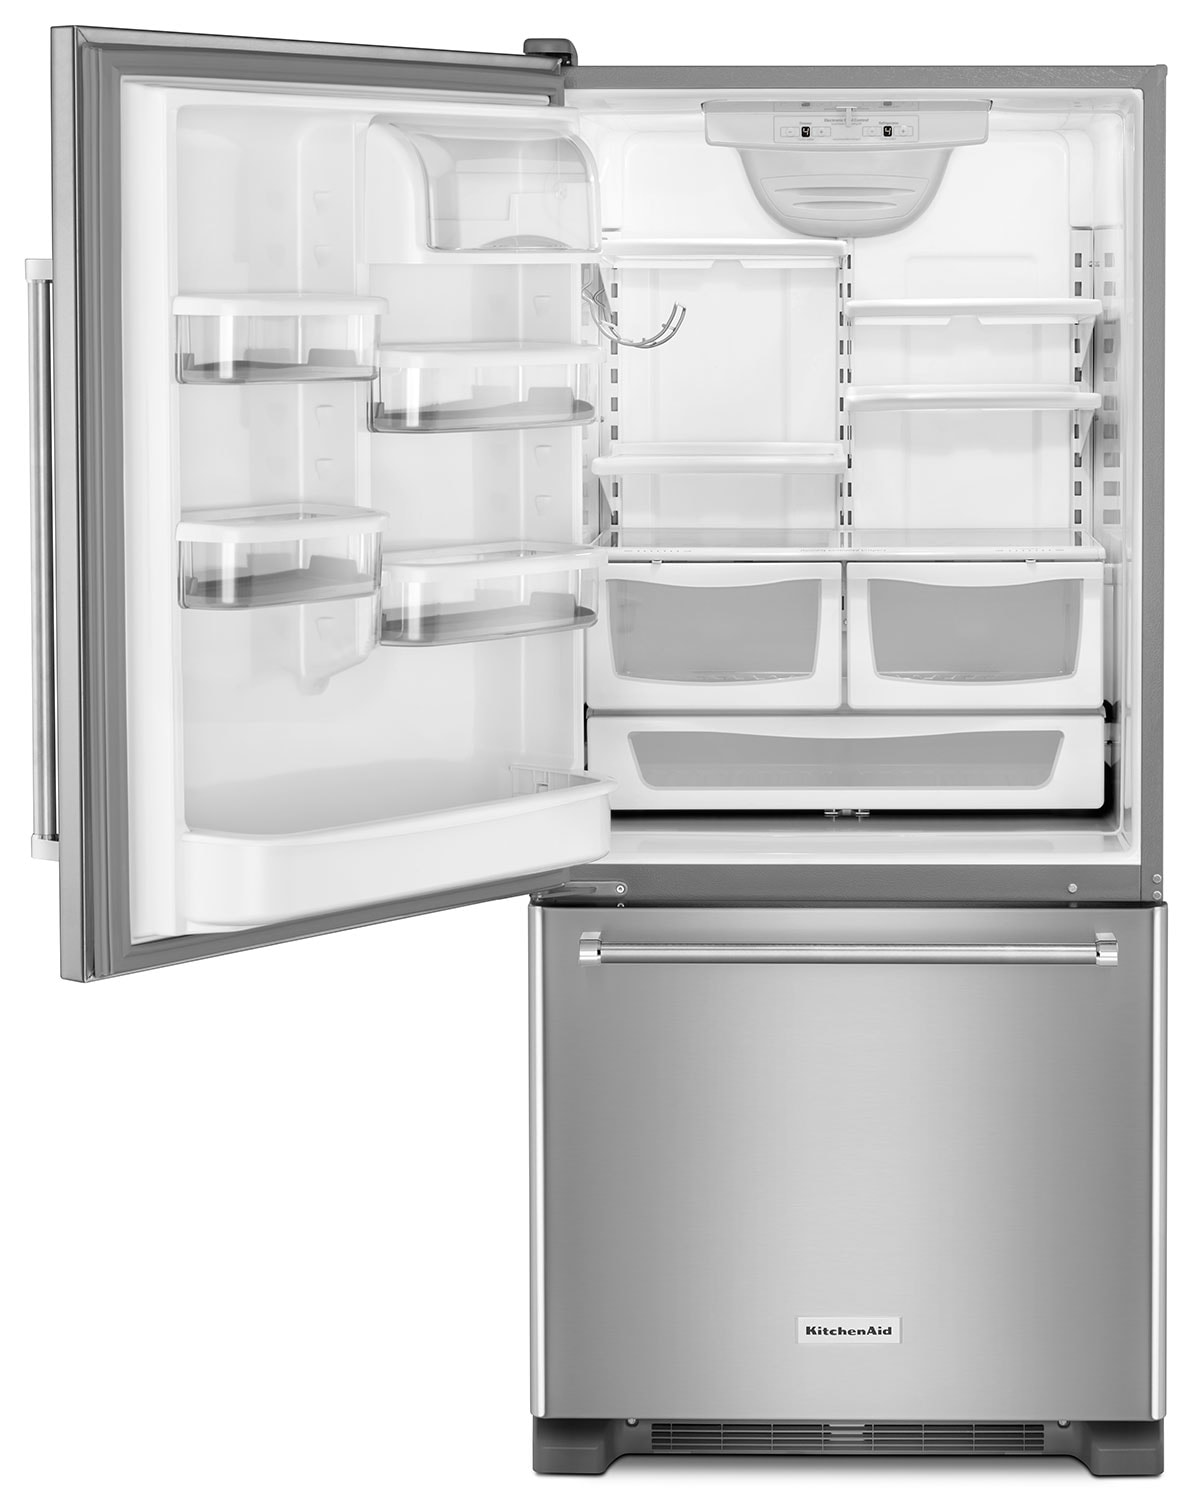 Non Stainless Steel Appliances Kitchenaid Stainless Steel Bottom Freezer Refrigerator 187 Cu